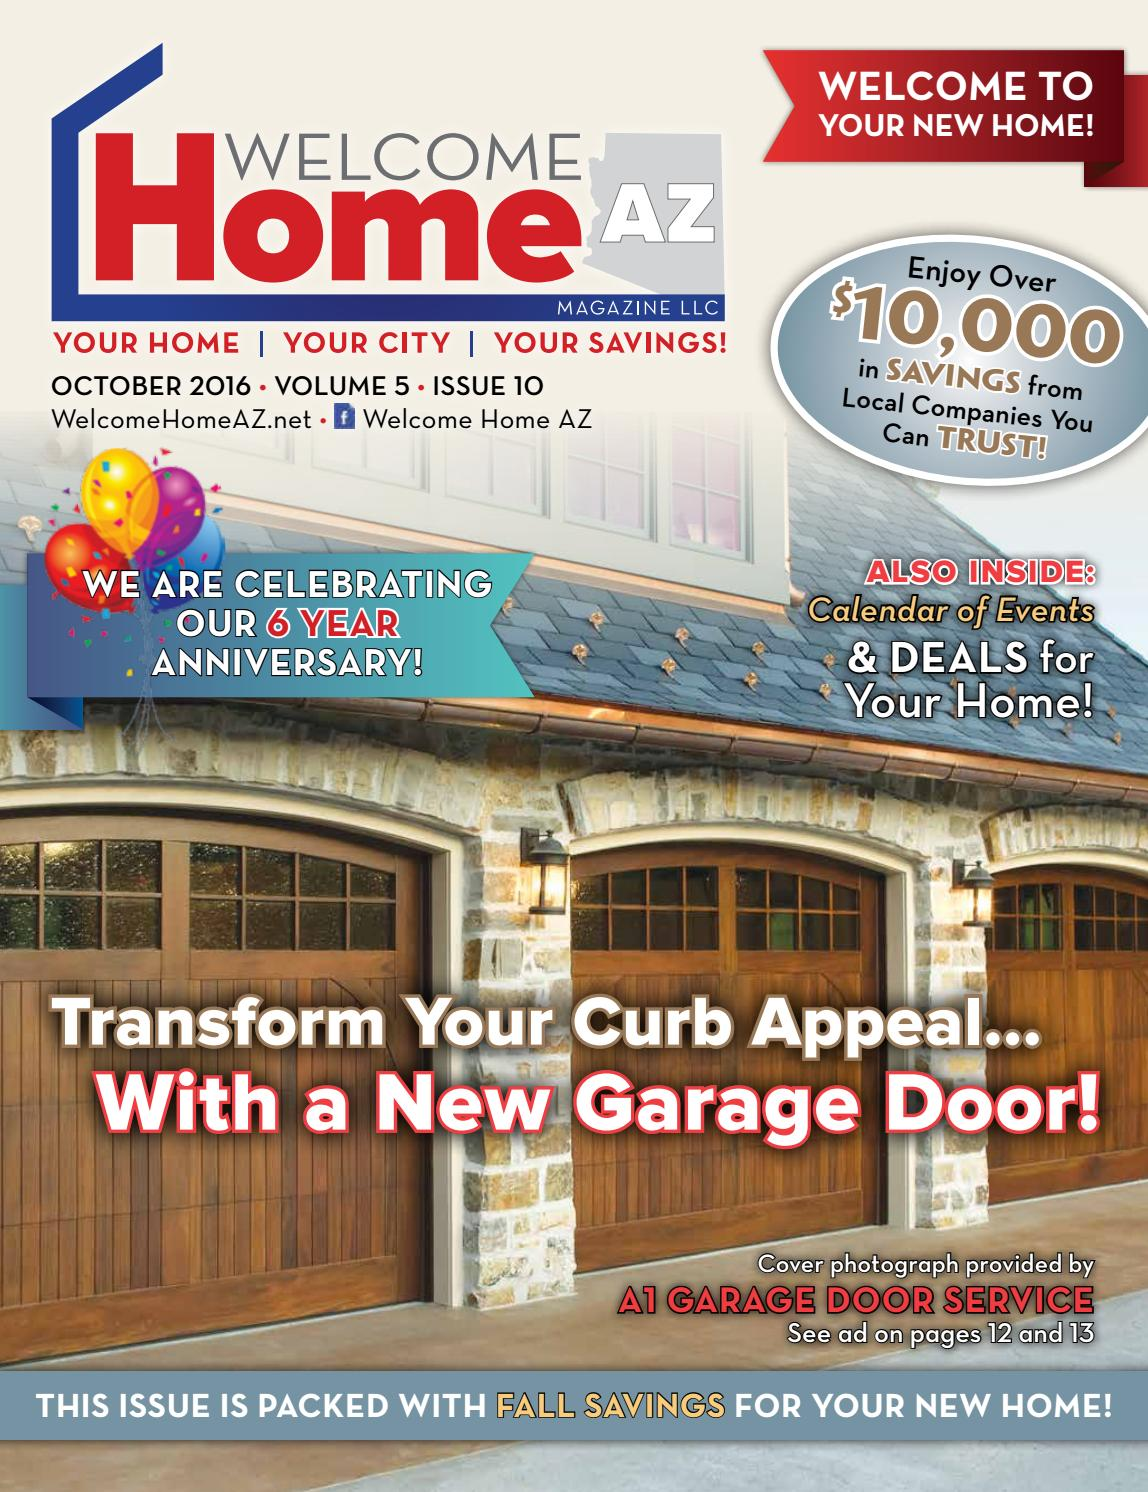 Welcome home az by misty voitovski issuu for Garage appeal coupon code